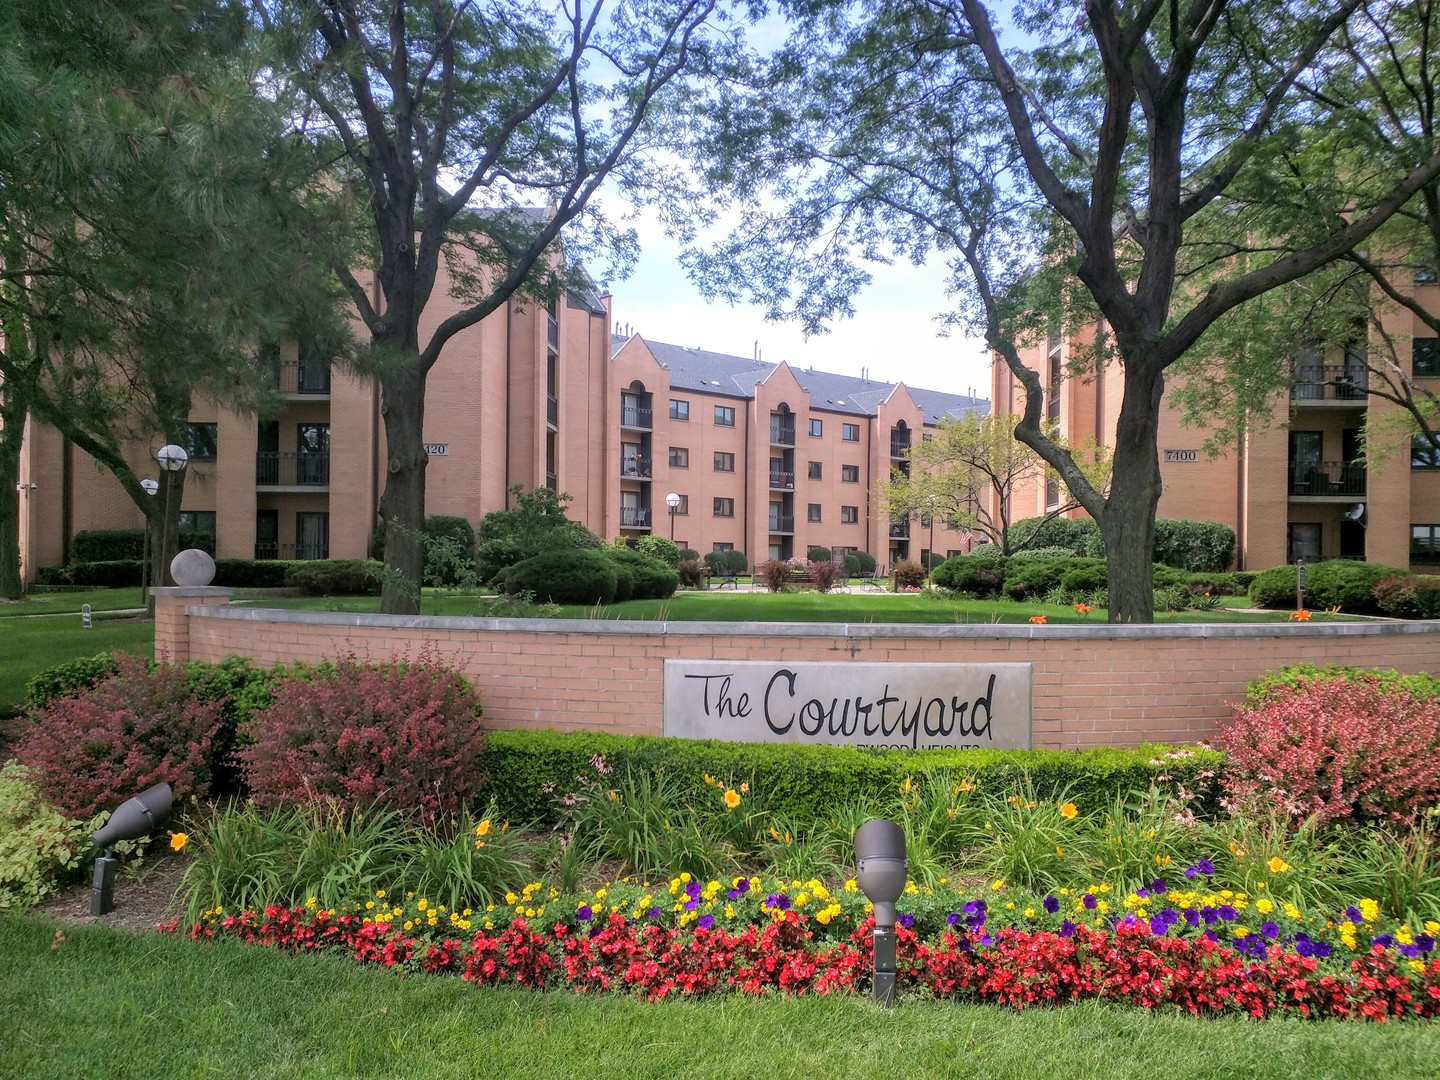 7400 Lawrence Unit Unit 131 ,Harwood Heights, Illinois 60706